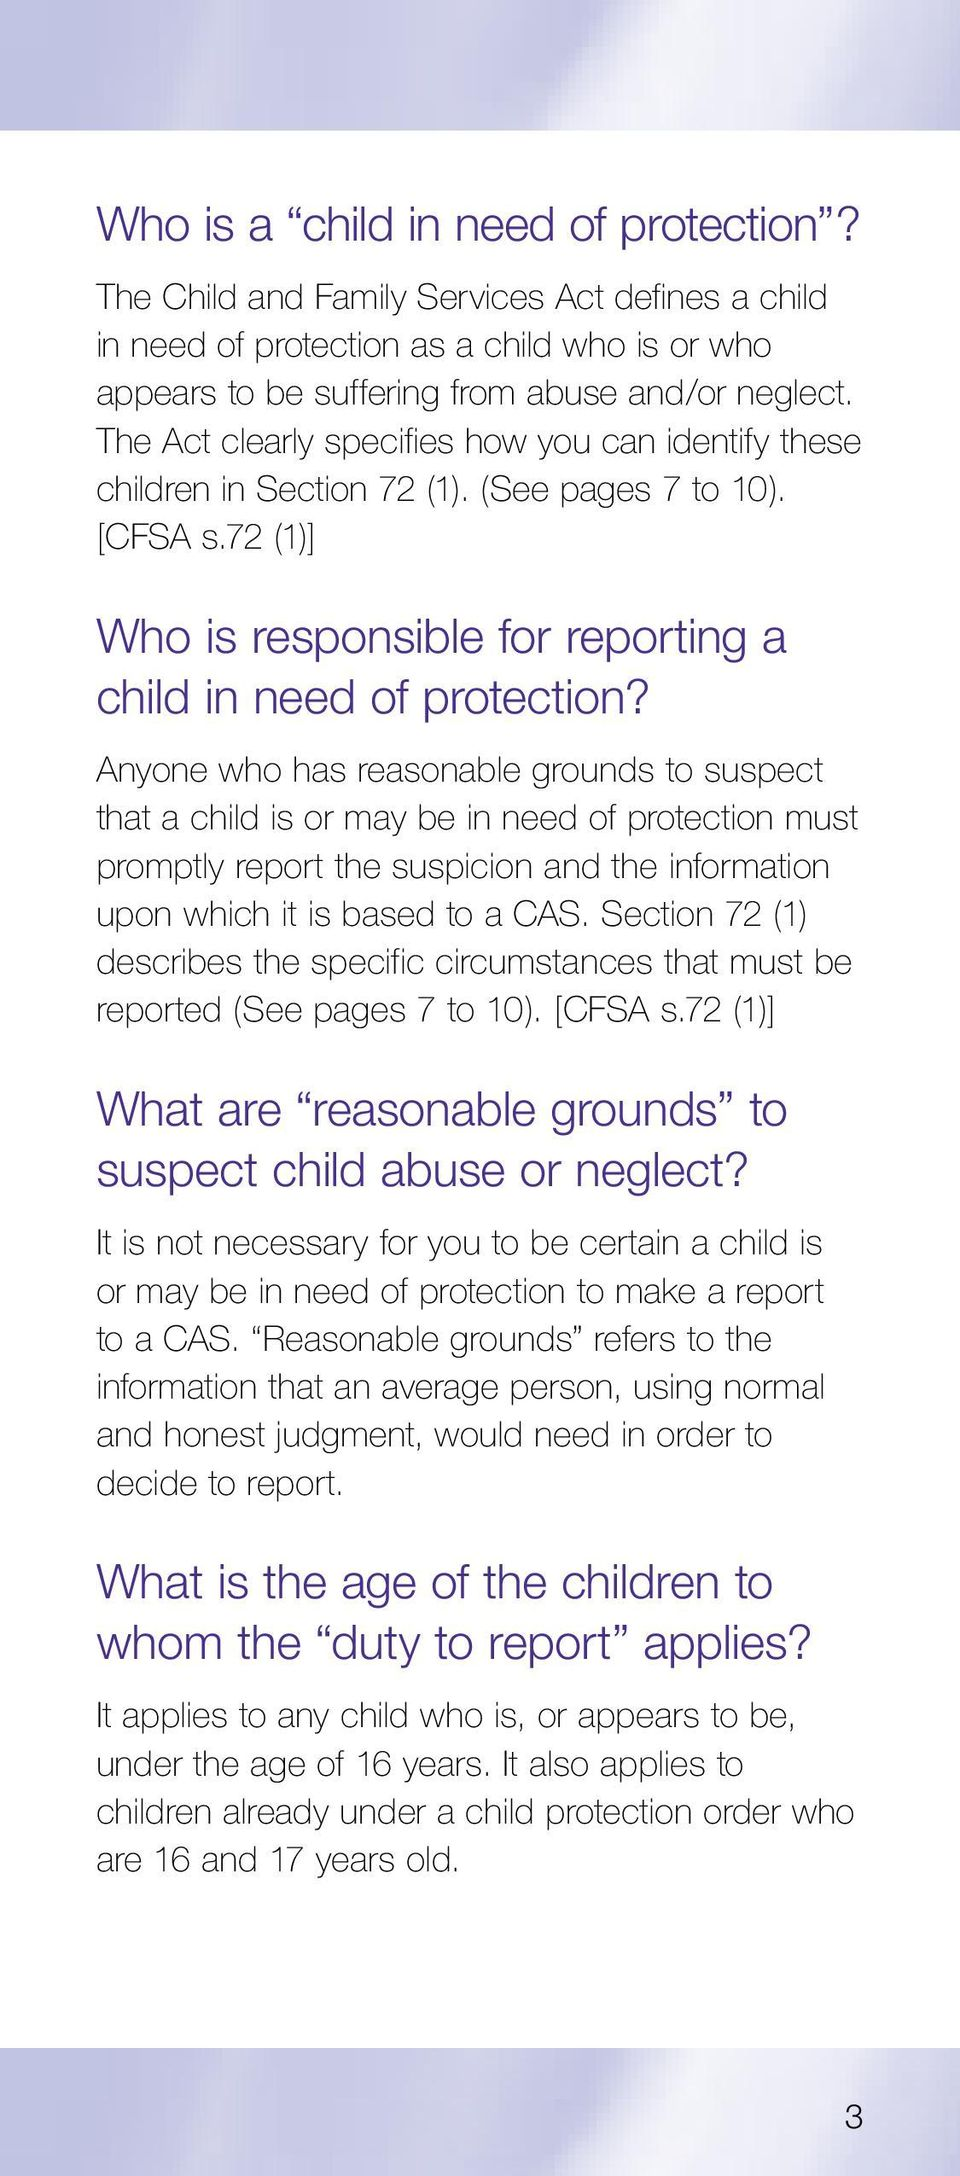 Anyone who has reasonable grounds to suspect that a child is or may be in need of protection must promptly report the suspicion and the information upon which it is based to a CAS.